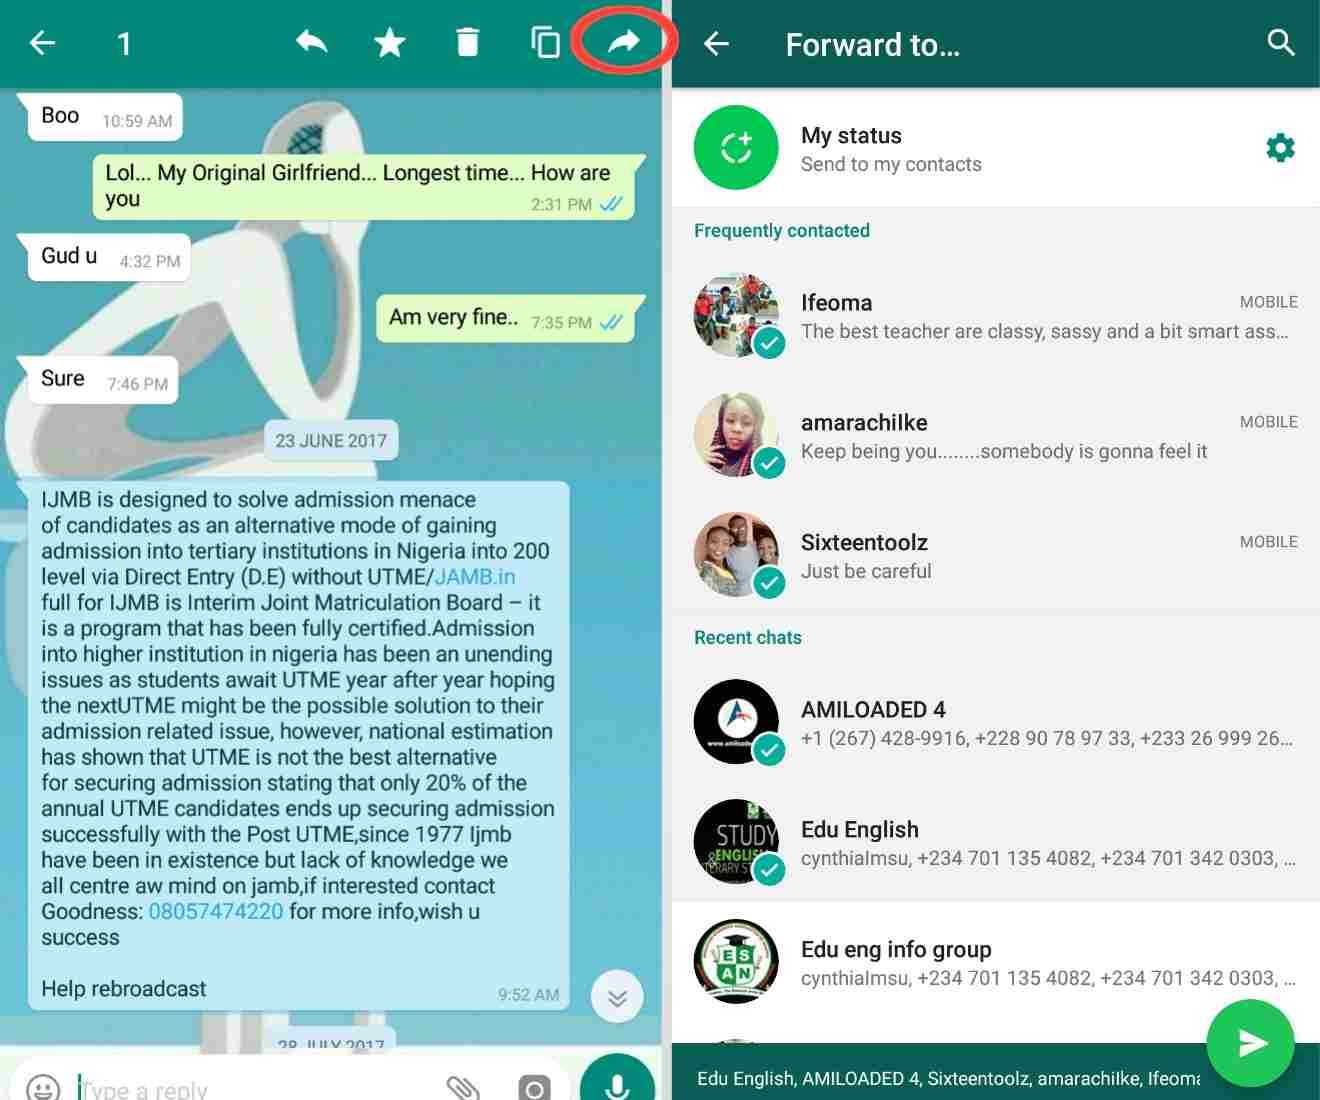 whatsapp tricks 101 - how to forward a single message to multiple number of persons at once on whatsapp